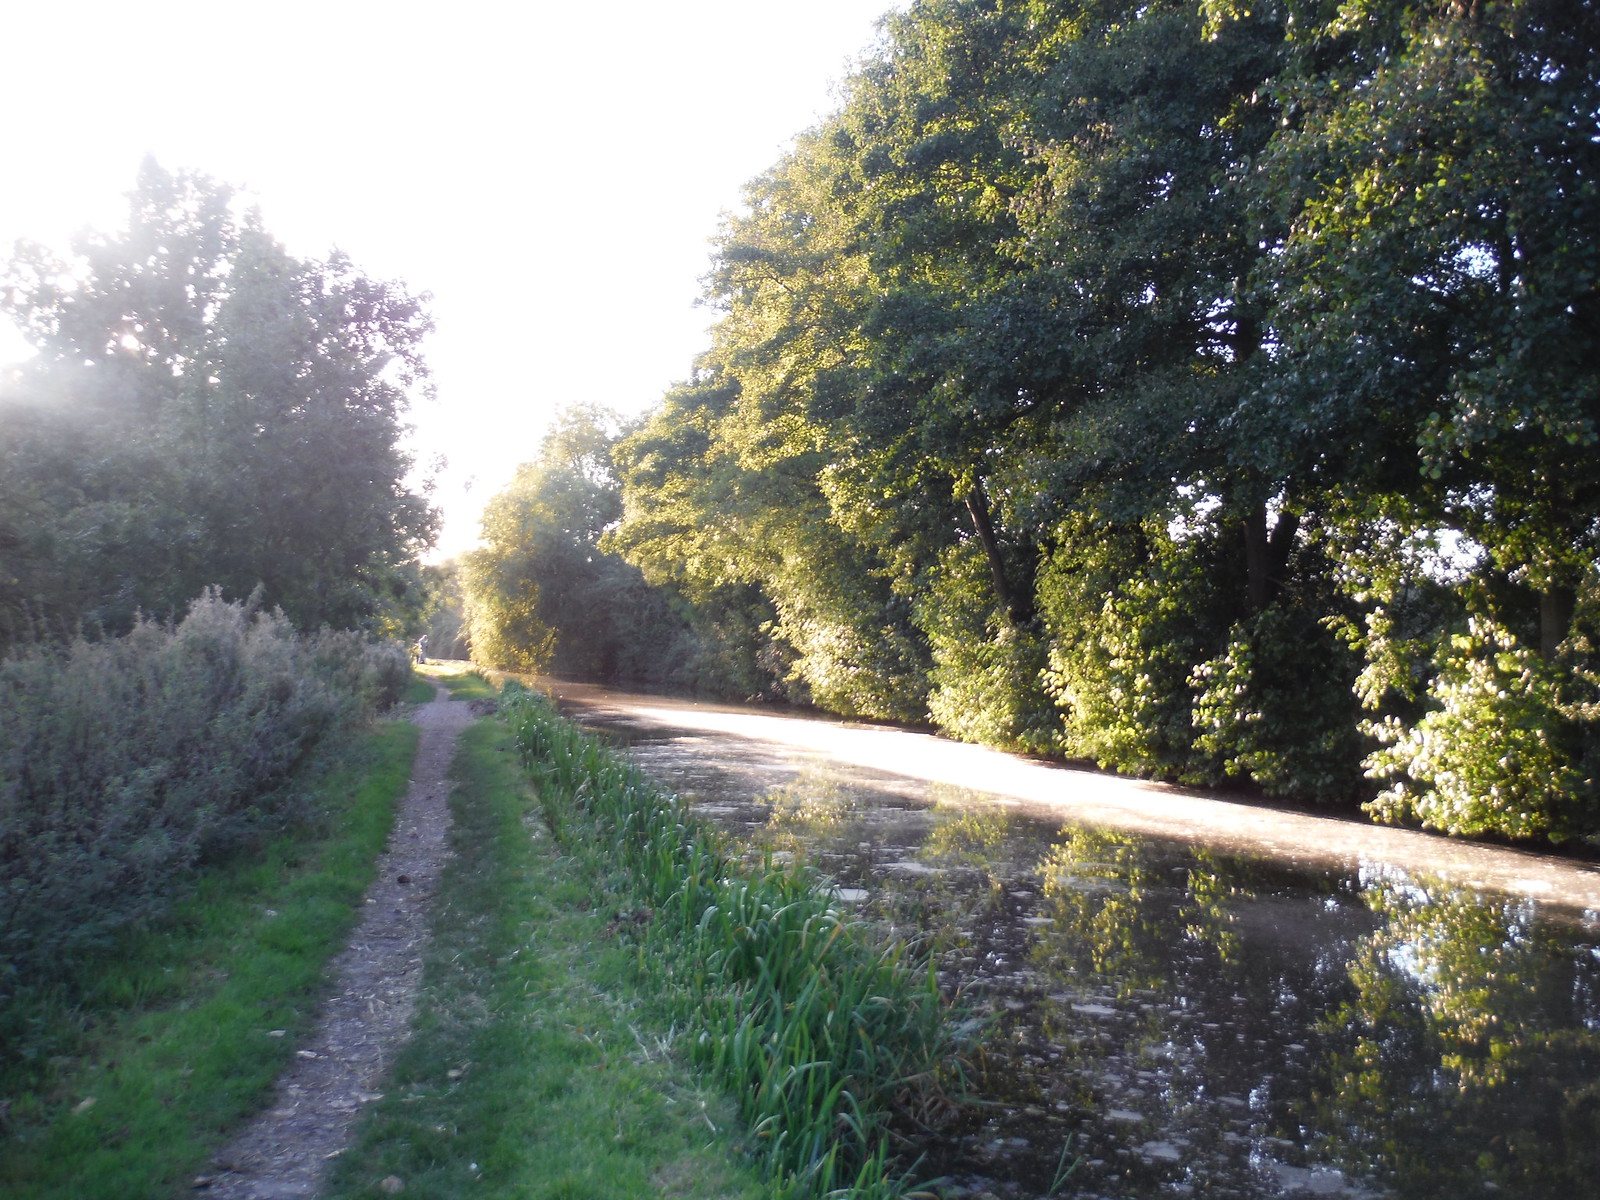 Towpath along Grand Union Canal SWC Walk 194 Aylesbury Vale Parkway to Aylesbury